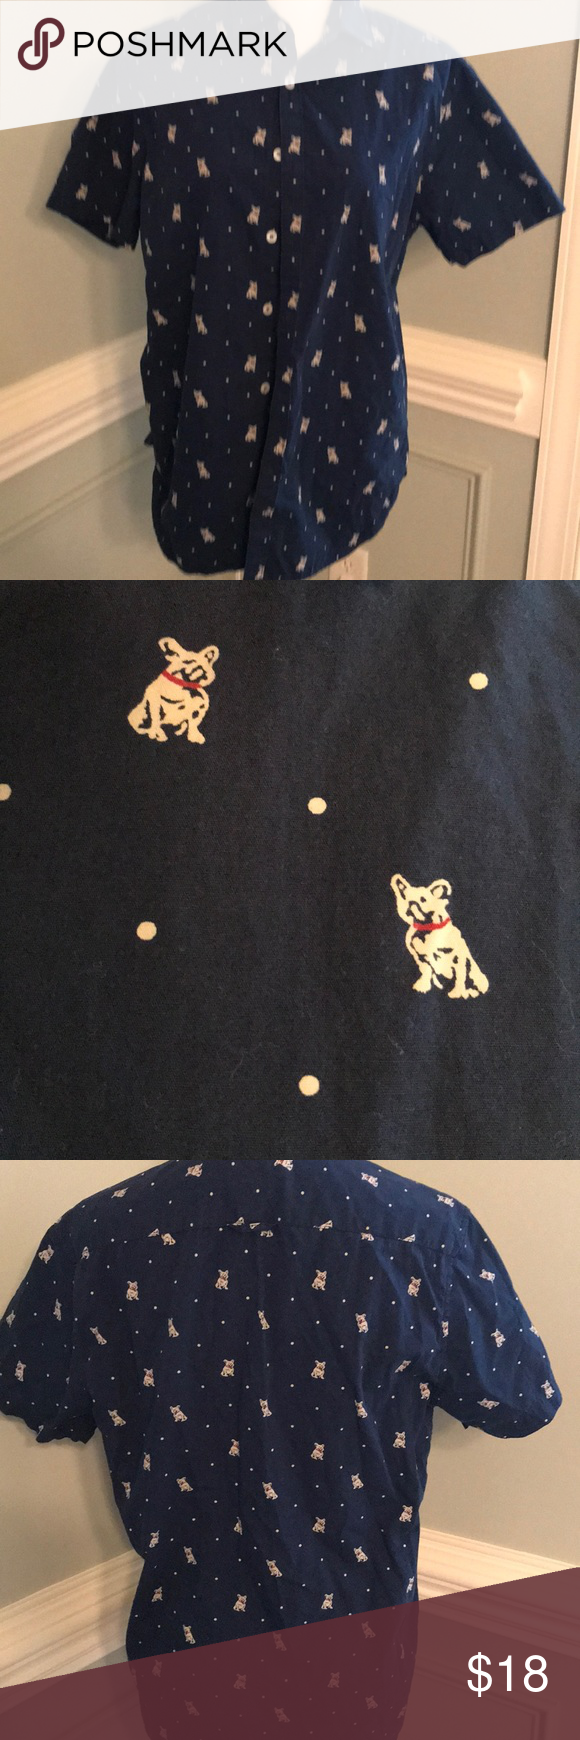 69d505d150 Denim and Flower Pug Shirt !!! Ricky Singh Omg This Pug Shirt is great !!!  Navy with Tan Pugs !! This is a Men s Slim fit M But could be Unisex !